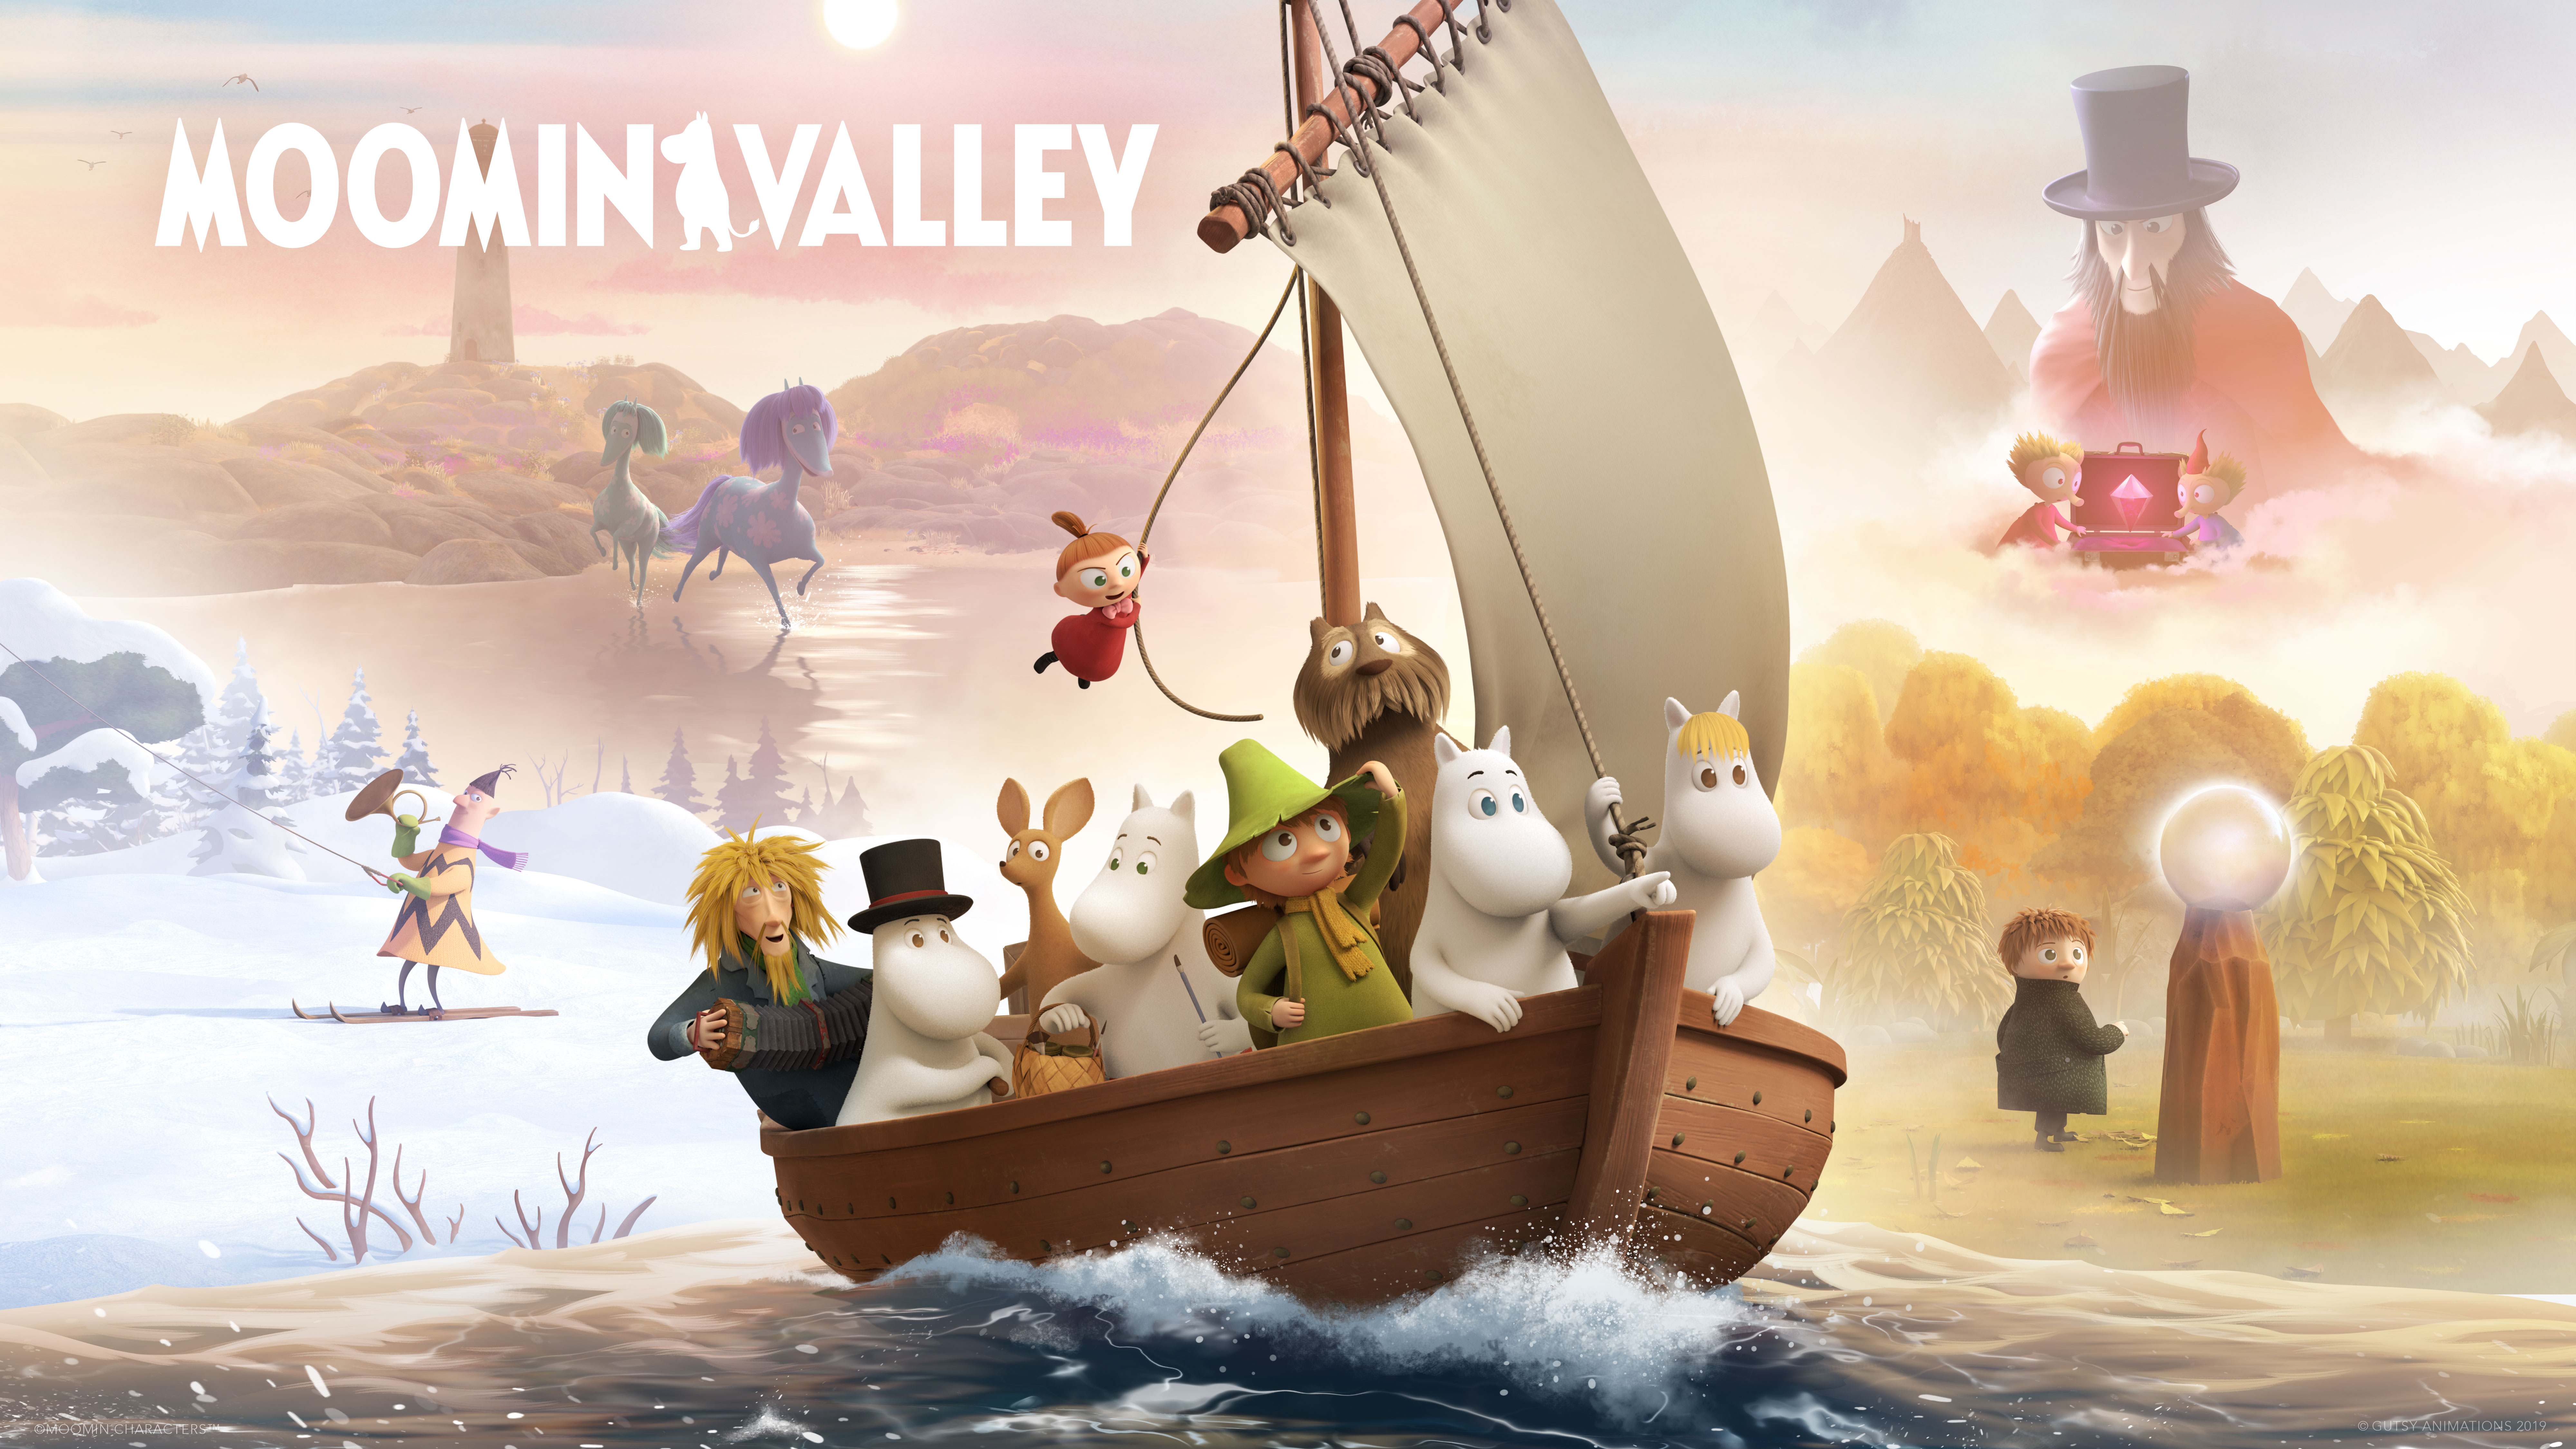 Moominvalley TV series (2019)